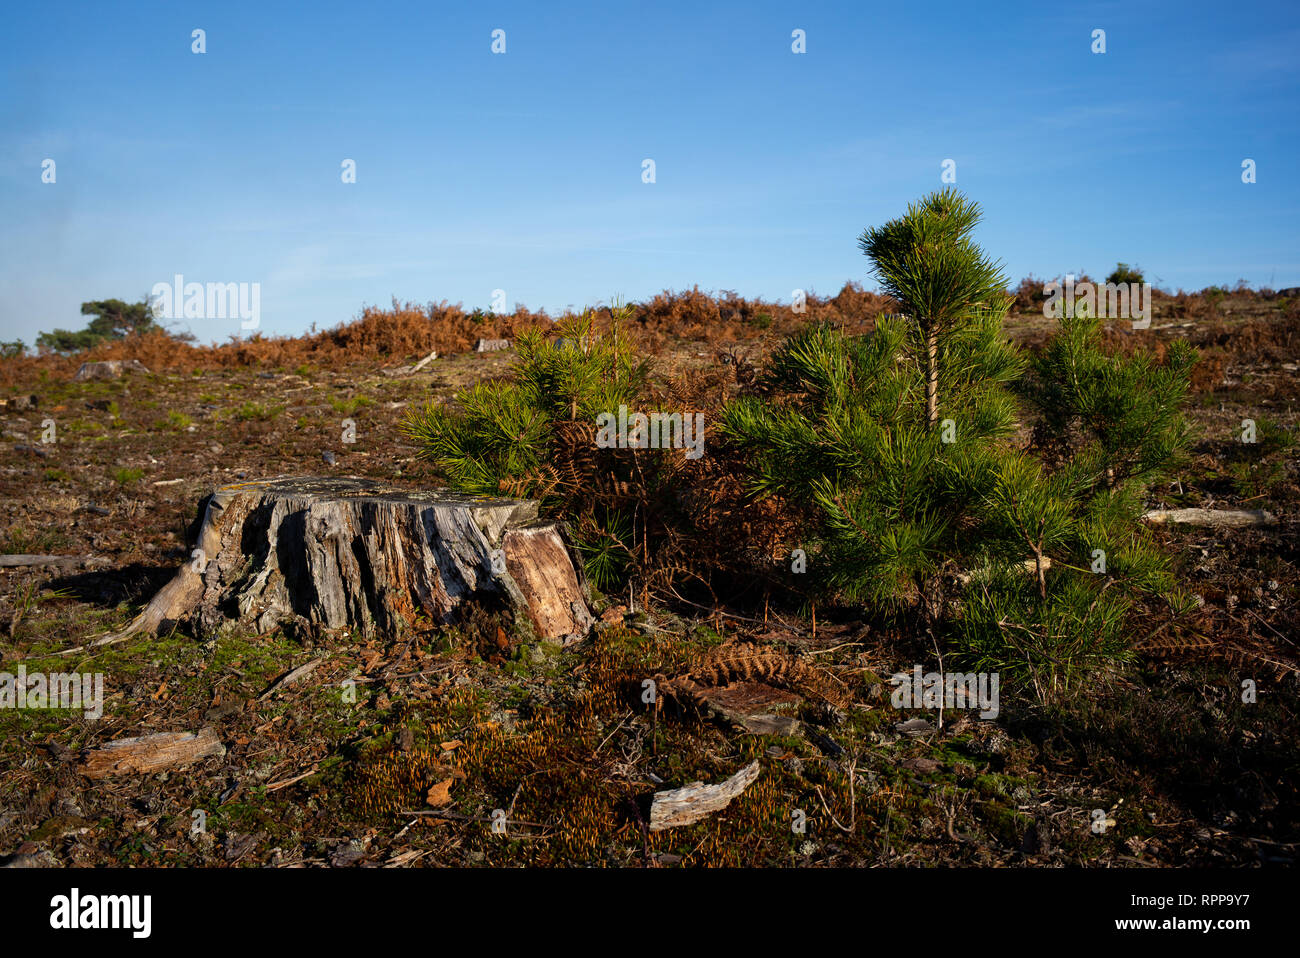 Forestry work in new forest national park Hampshire England with new planted  trees growing next to the stump of an old tree in a managed wood forest. - Stock Image